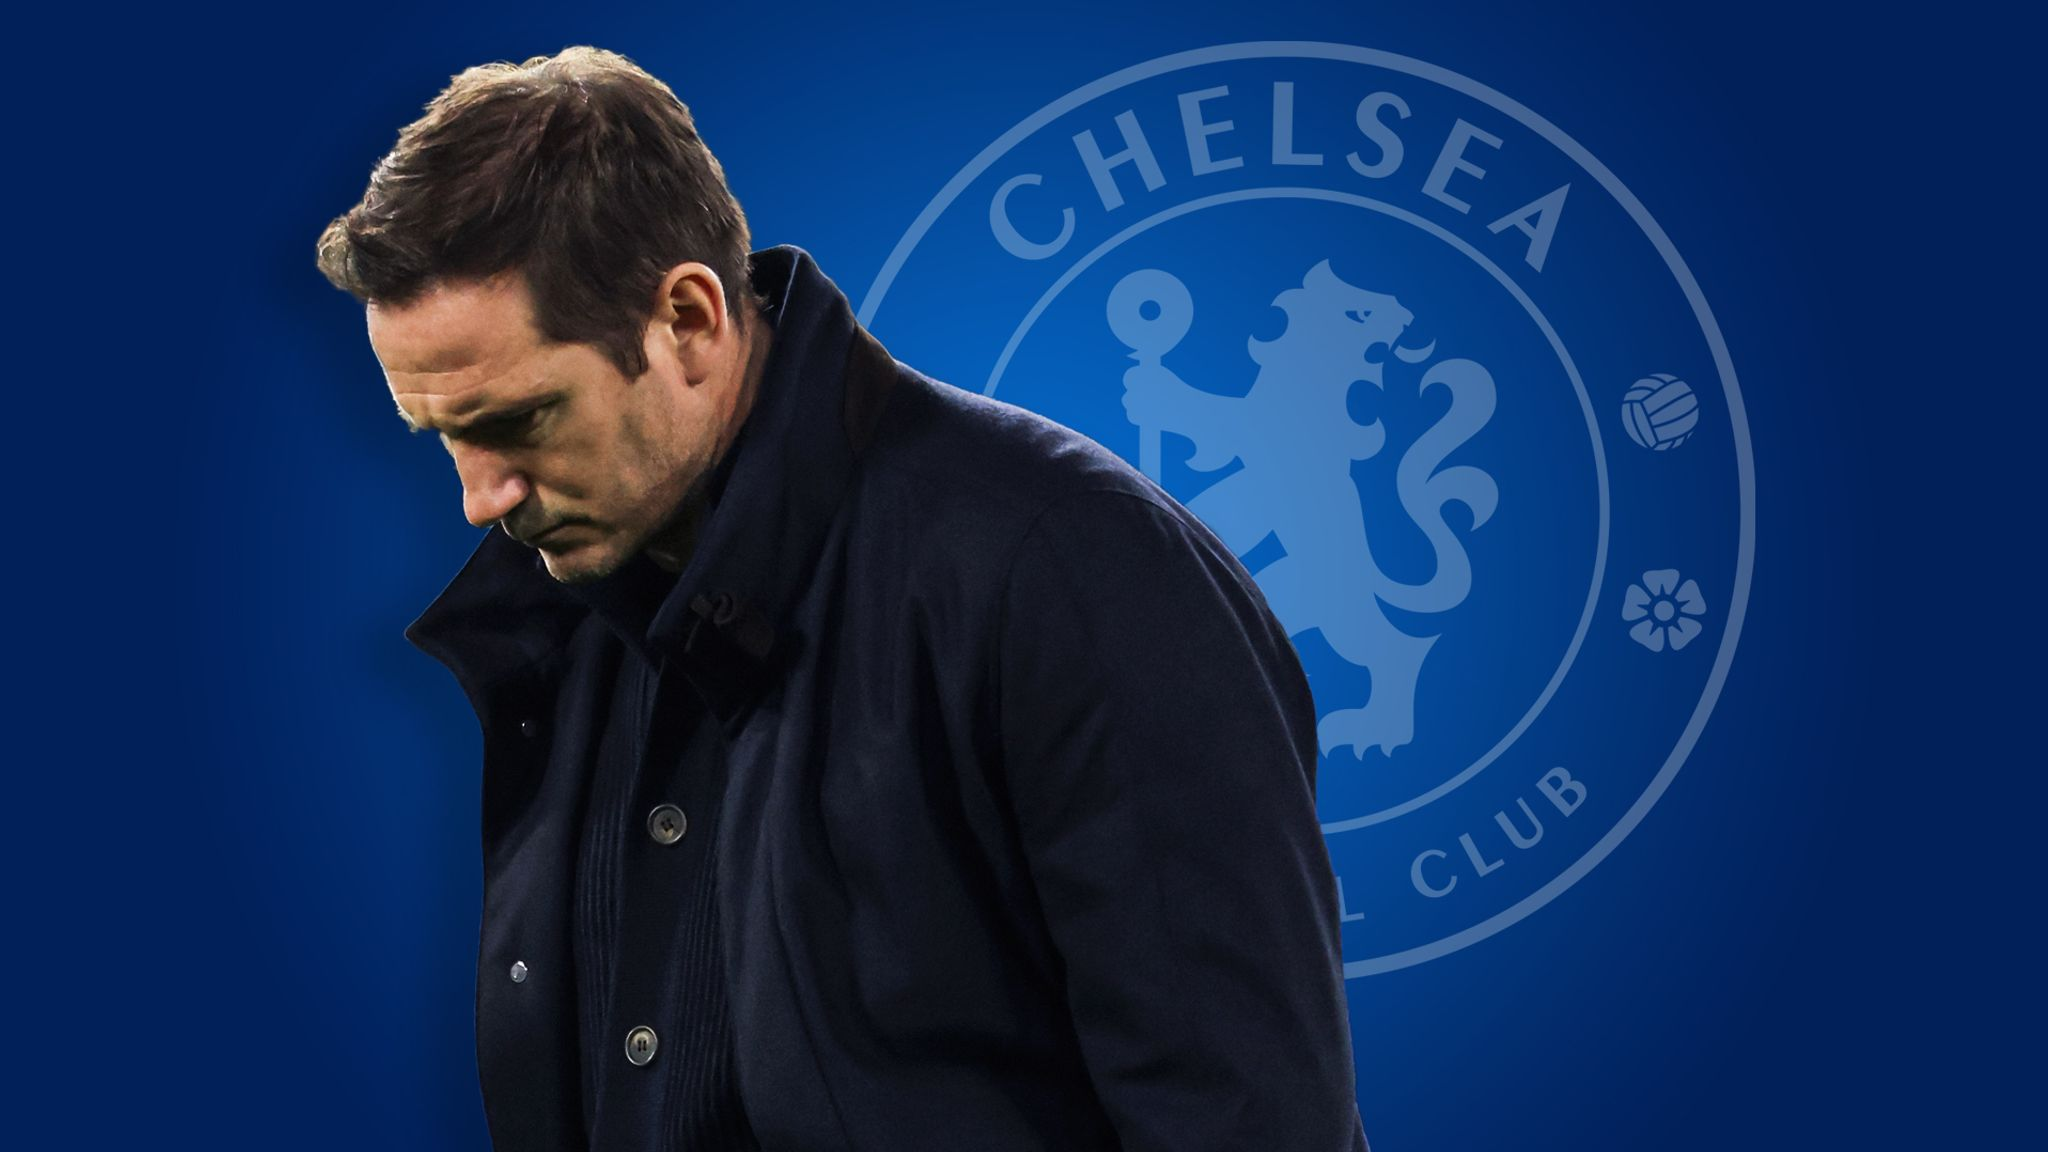 Chelsea lose patience with new direction | Football  News | Sky Sports